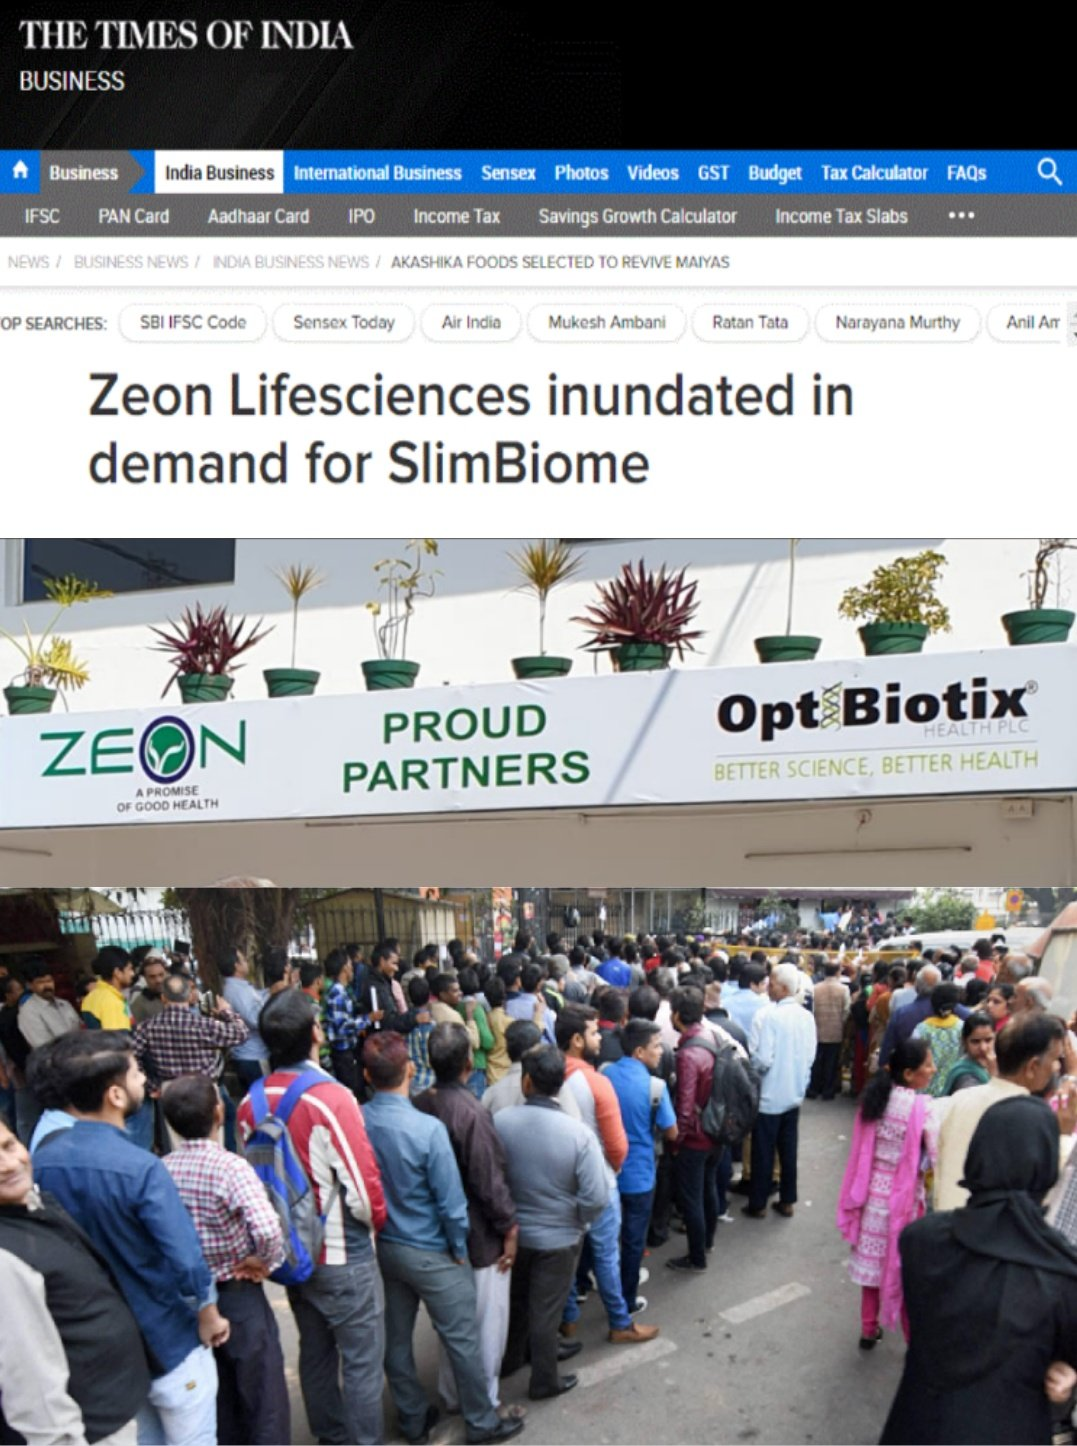 Lemming Investors by elrico: OptiBiotix Health - A Passage to India